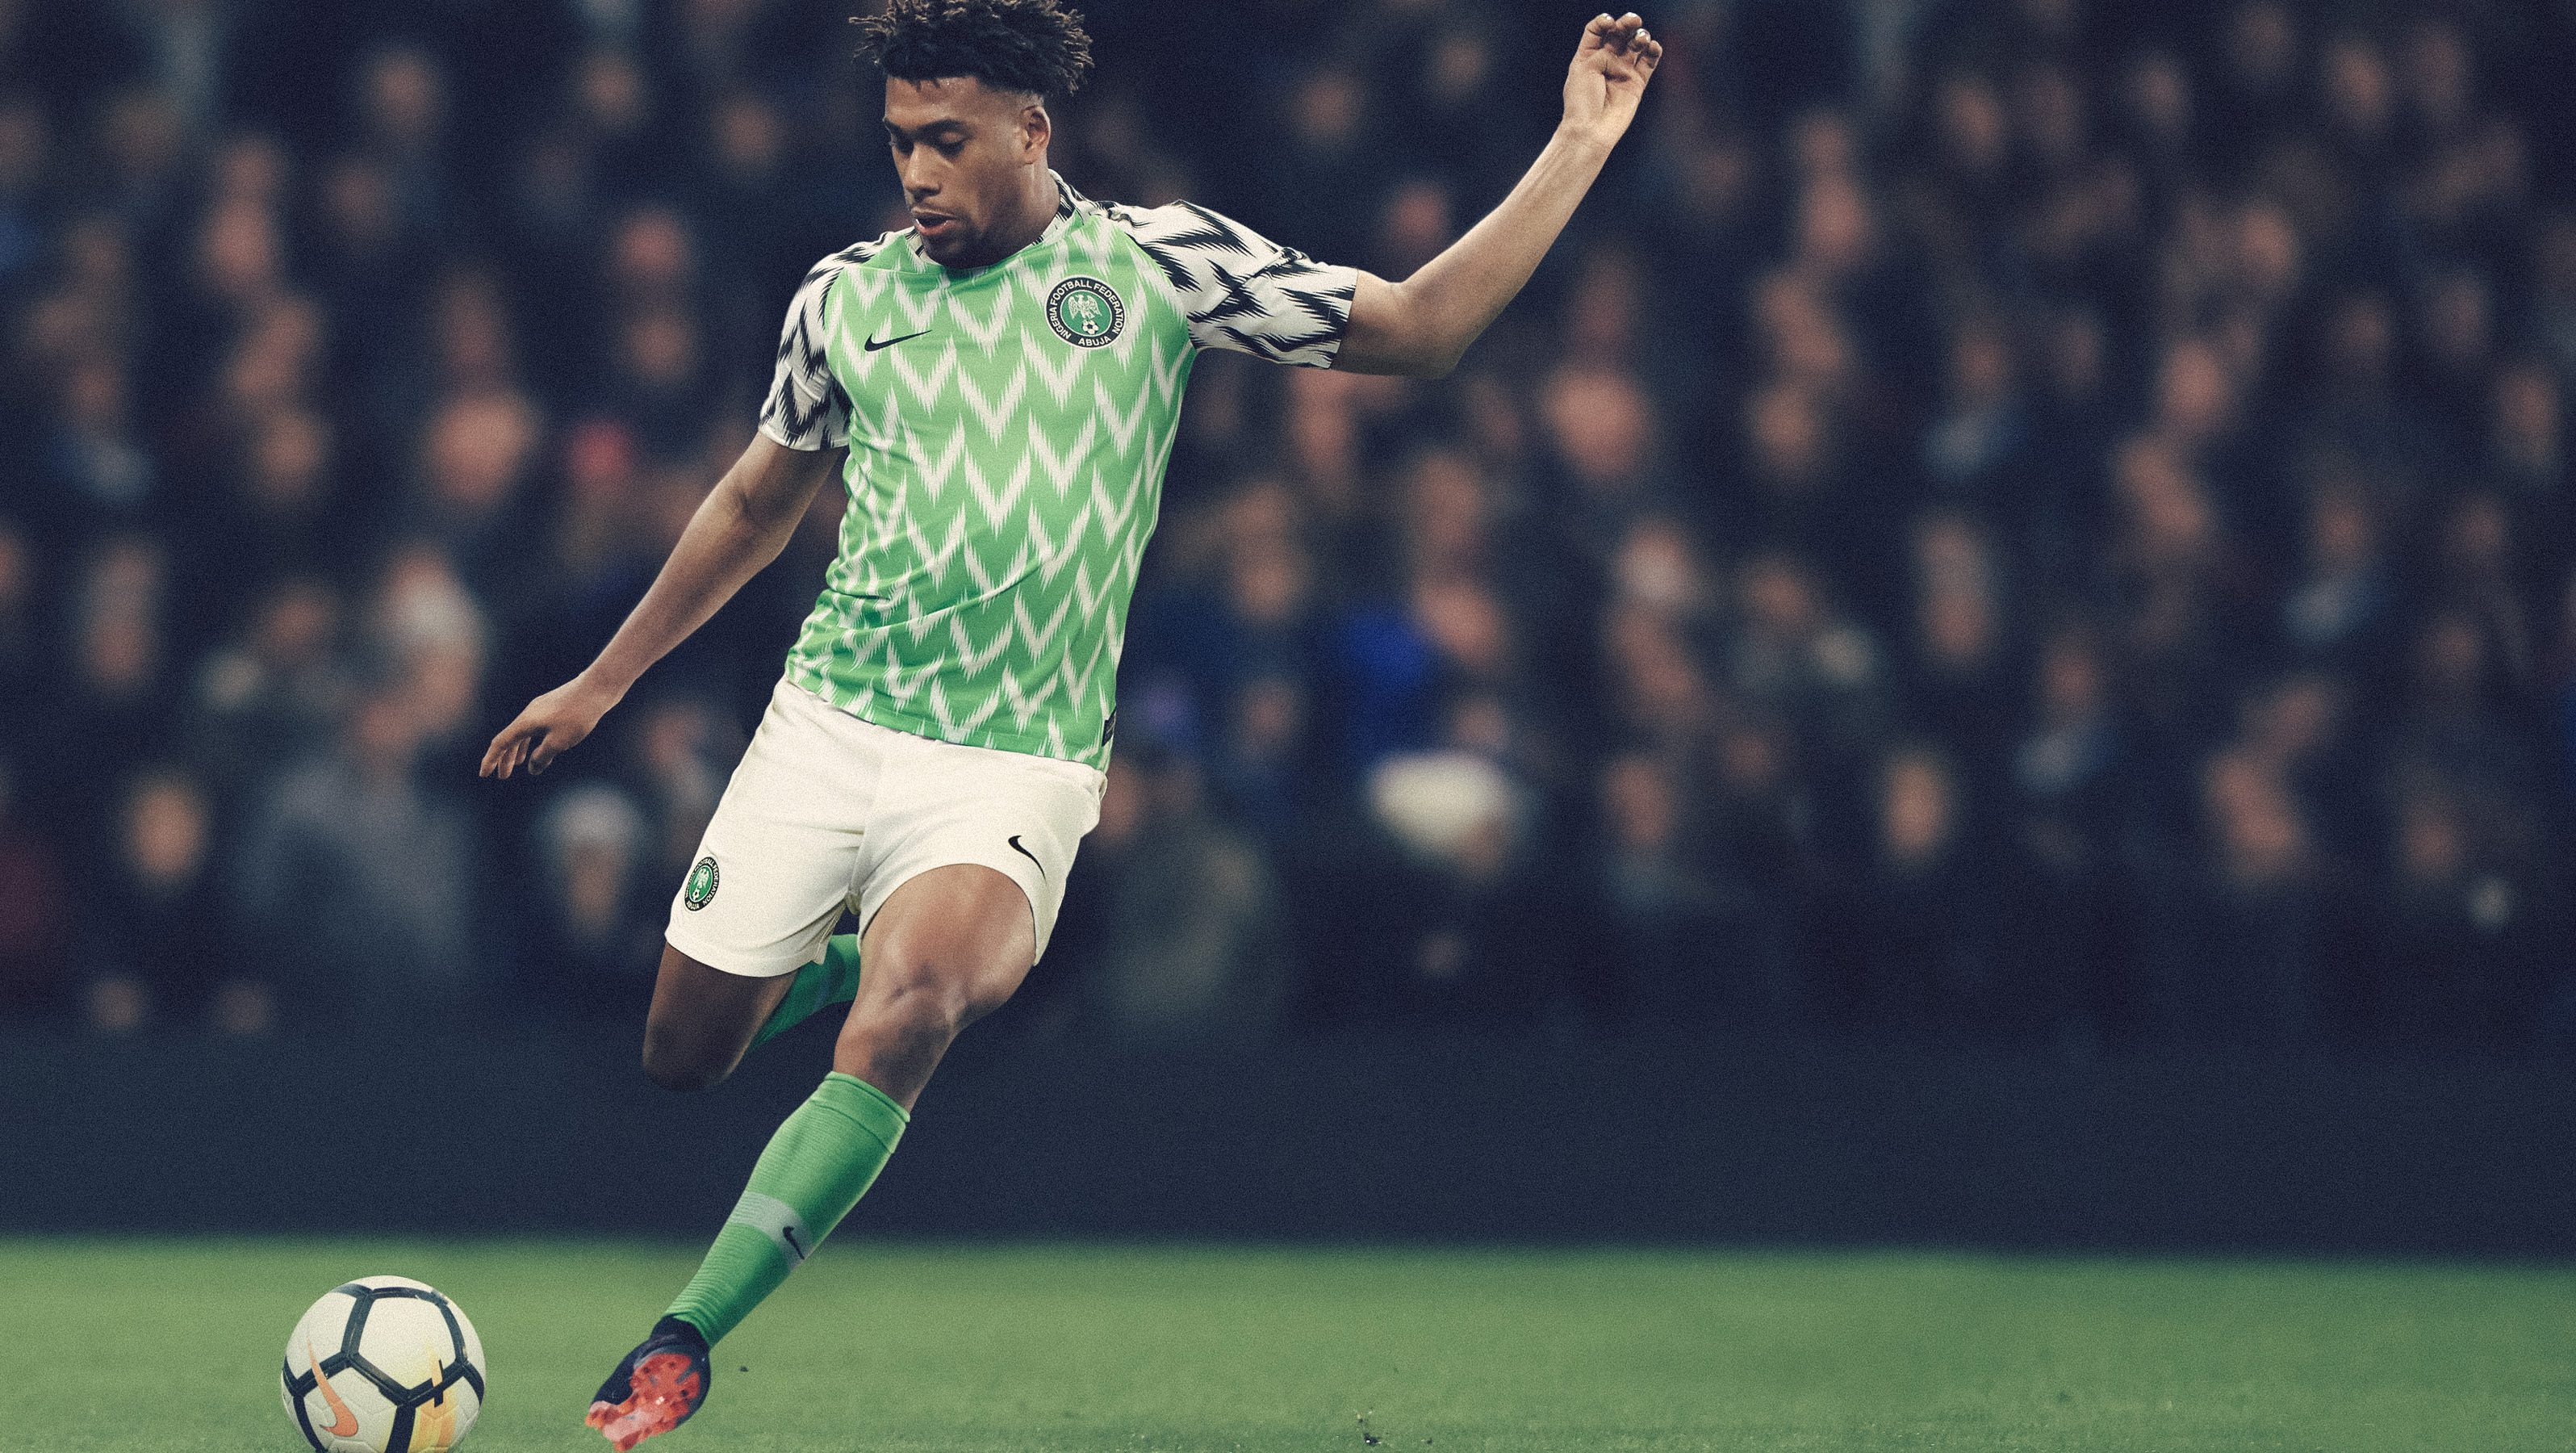 Nigeria's attacker injured, ruled out of World Cup